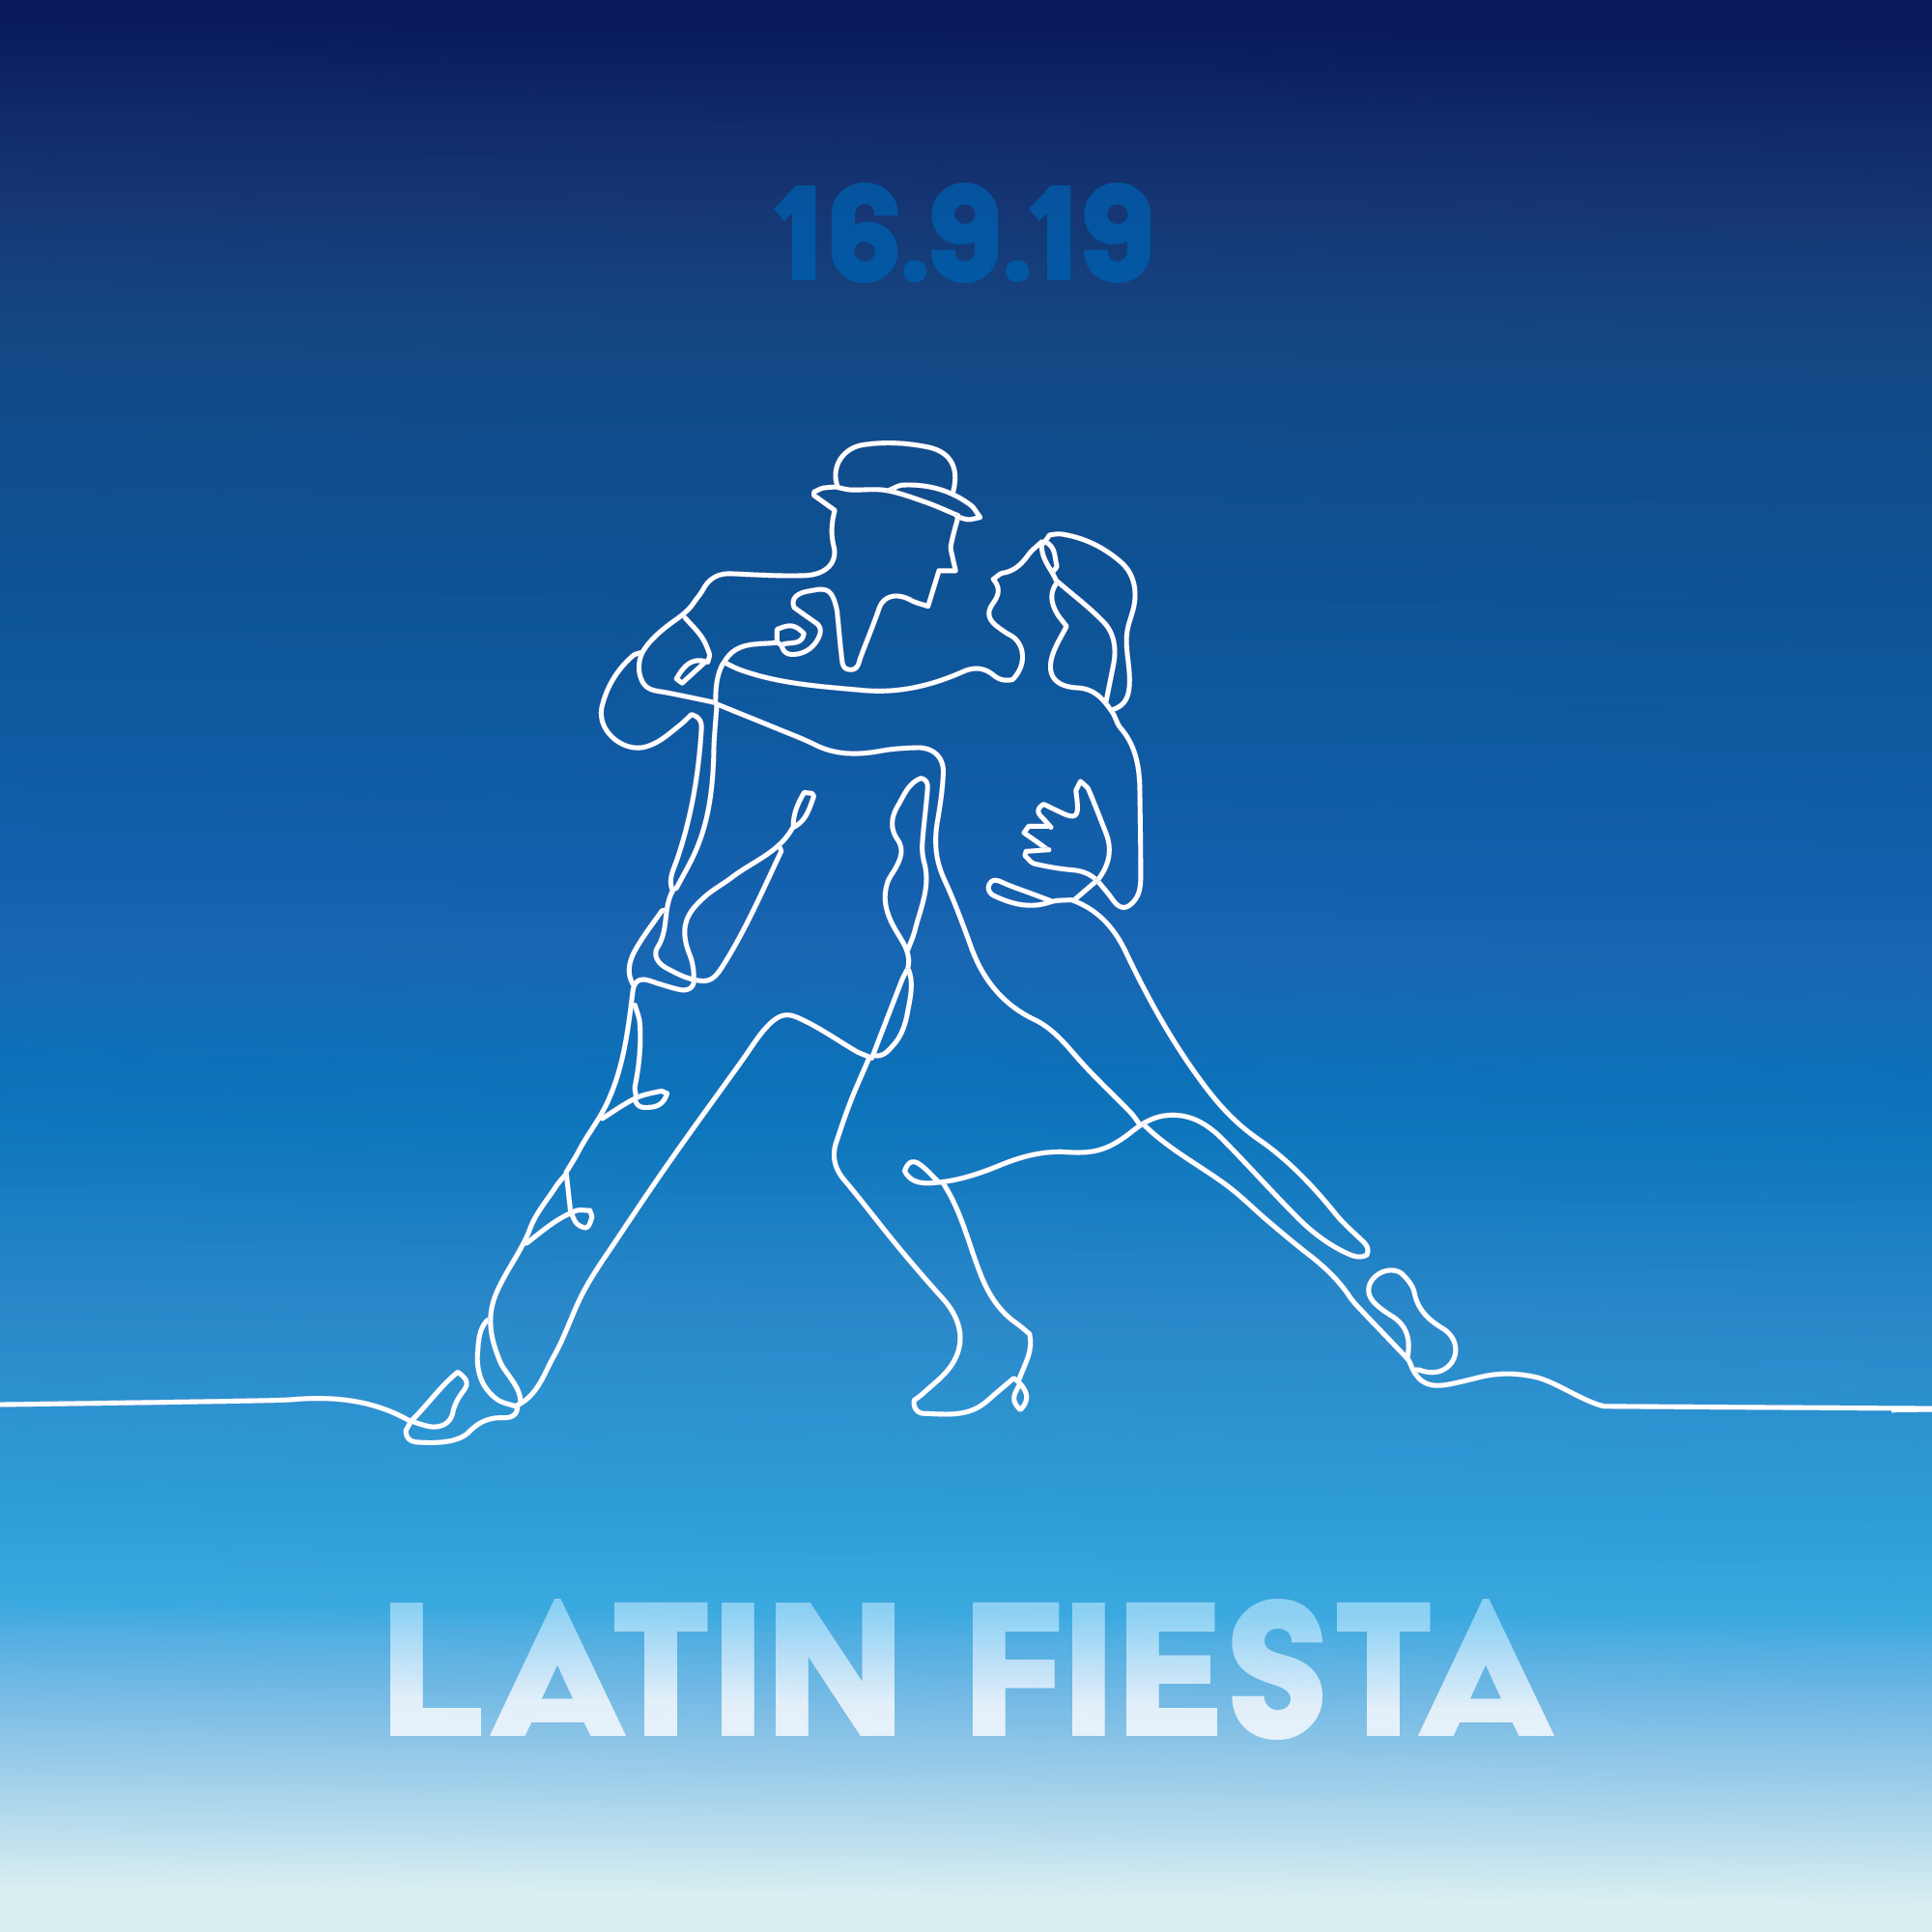 Latin Fiesta - Dance class hosted by the Latin Society until 9pm then get your groove on for a Latin themed night with live band!Monday 16 September 8pmLocation RWSUEntry Doors £3 (Free with 2019 wristband)